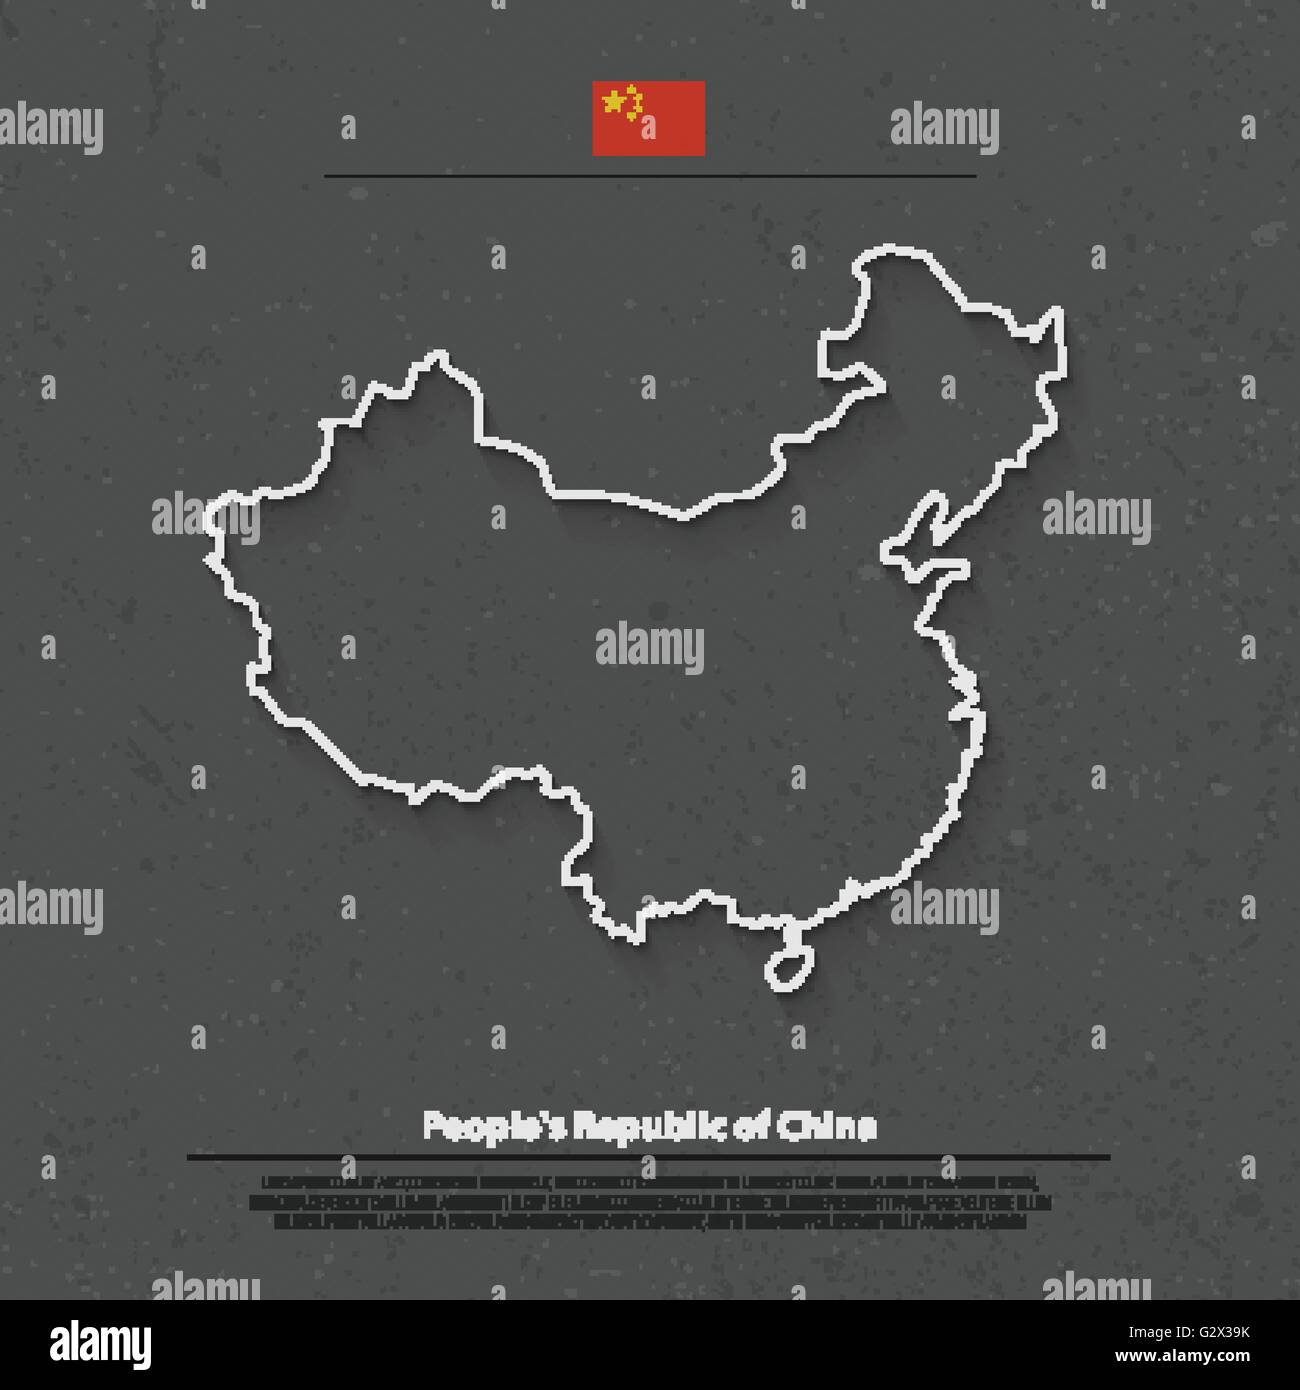 People's Republic of China isolated map and official flag icons. vector Chinese political map thin line illustration. - Stock Image